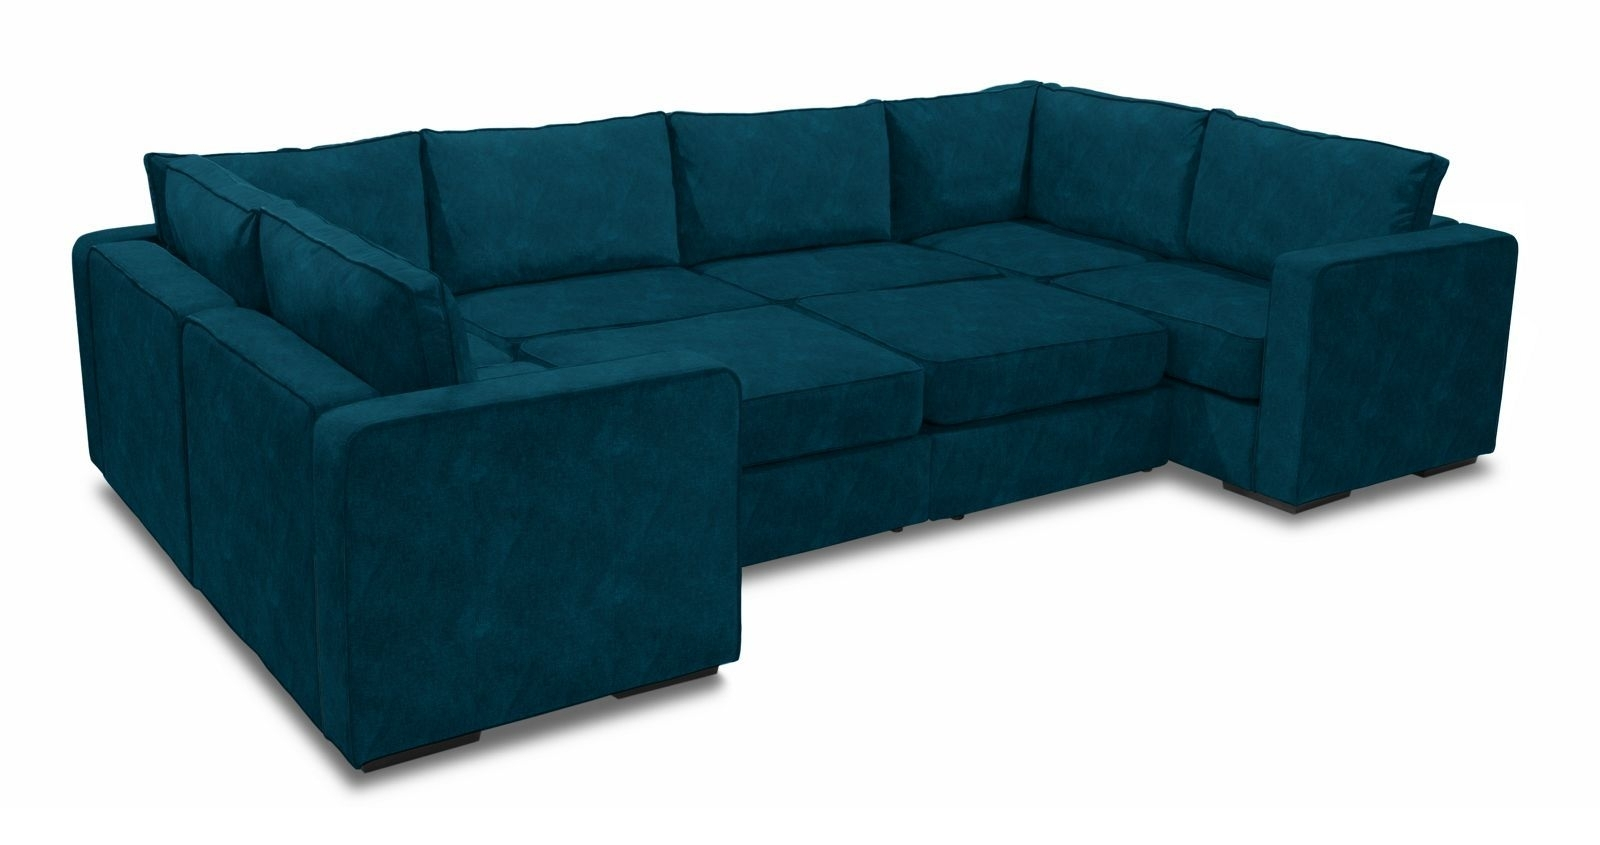 8 Seats + 10 Sides | Living/media Room | Pinterest | Couch, Home Inside London Optical Reversible Sofa Chaise Sectionals (Gallery 10 of 30)